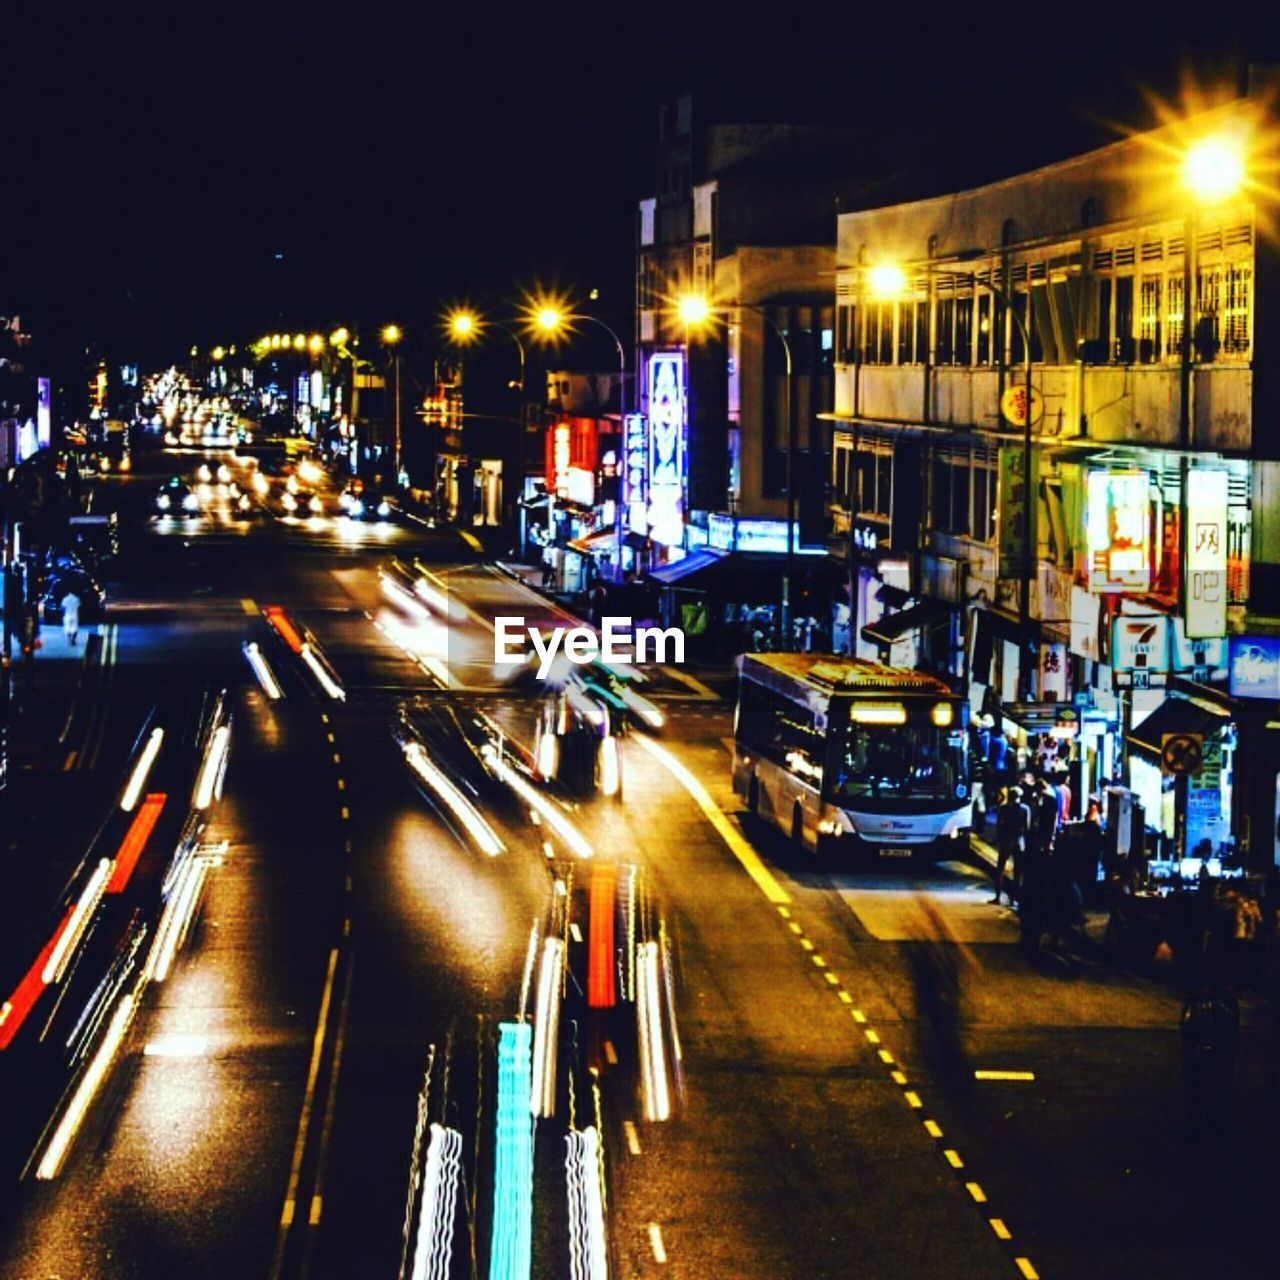 night, illuminated, blurred motion, motion, city, long exposure, transportation, architecture, building exterior, light trail, speed, built structure, street, road, city life, outdoors, street light, mode of transport, high street, no people, cityscape